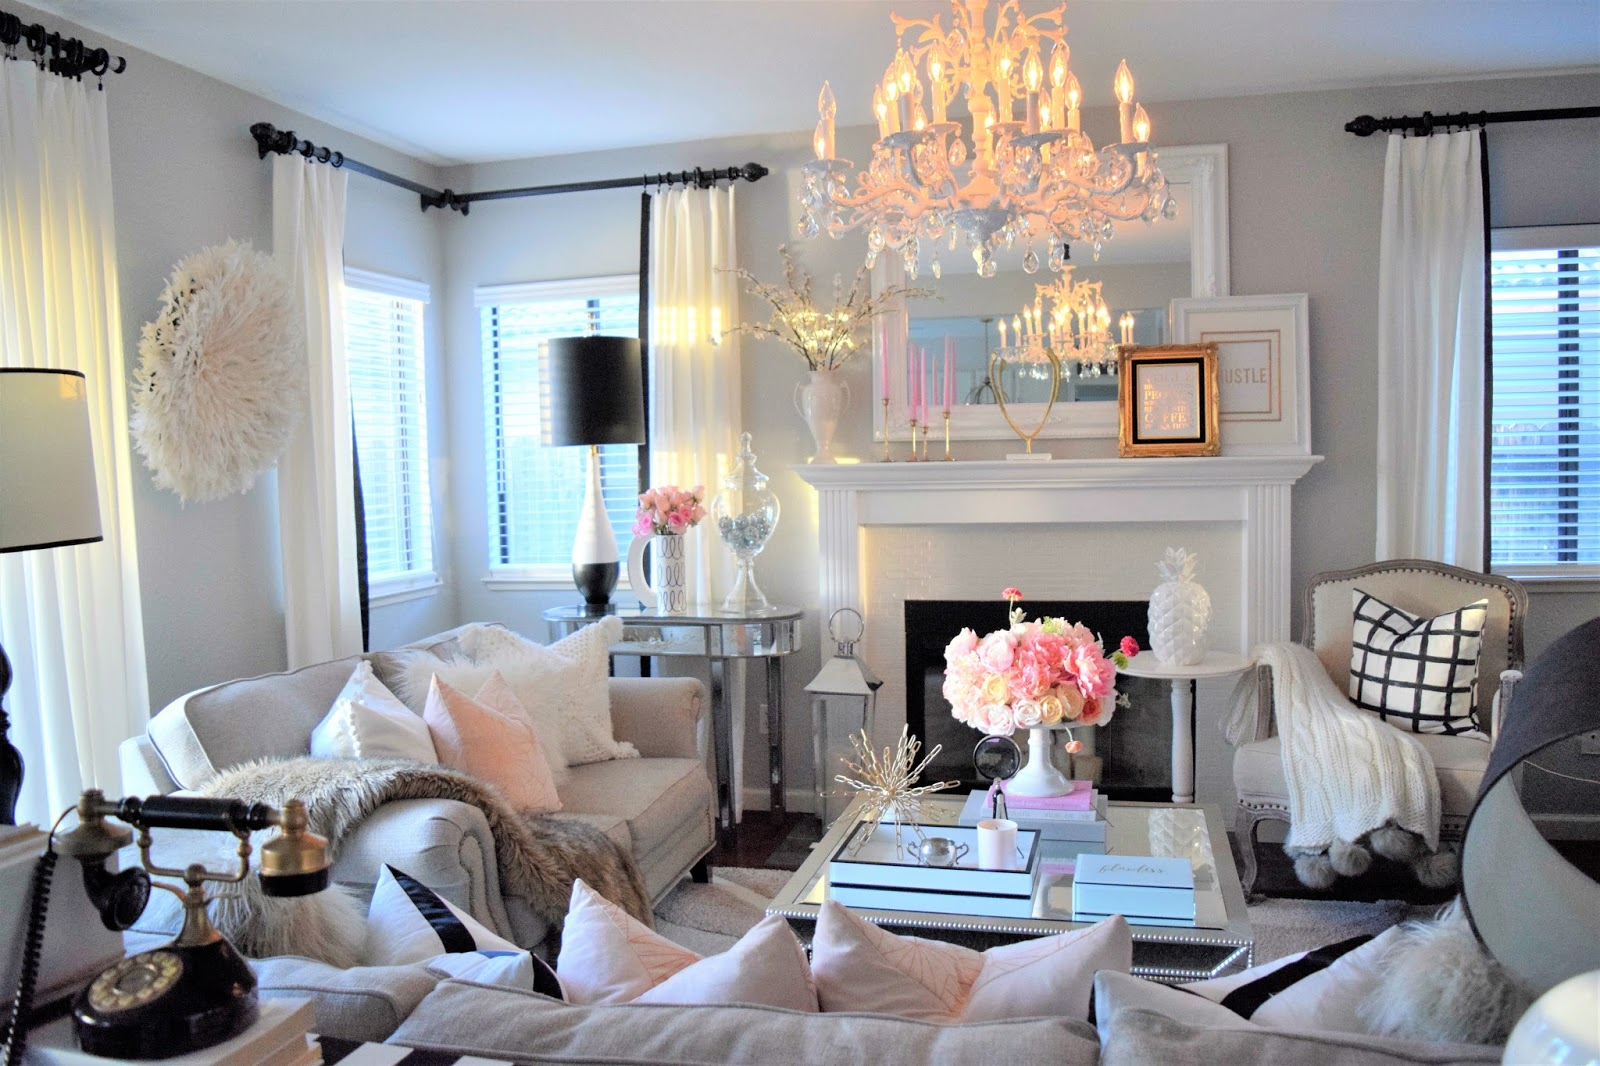 Bring That Royal Look In Your Living Room In Just Few Simple Steps